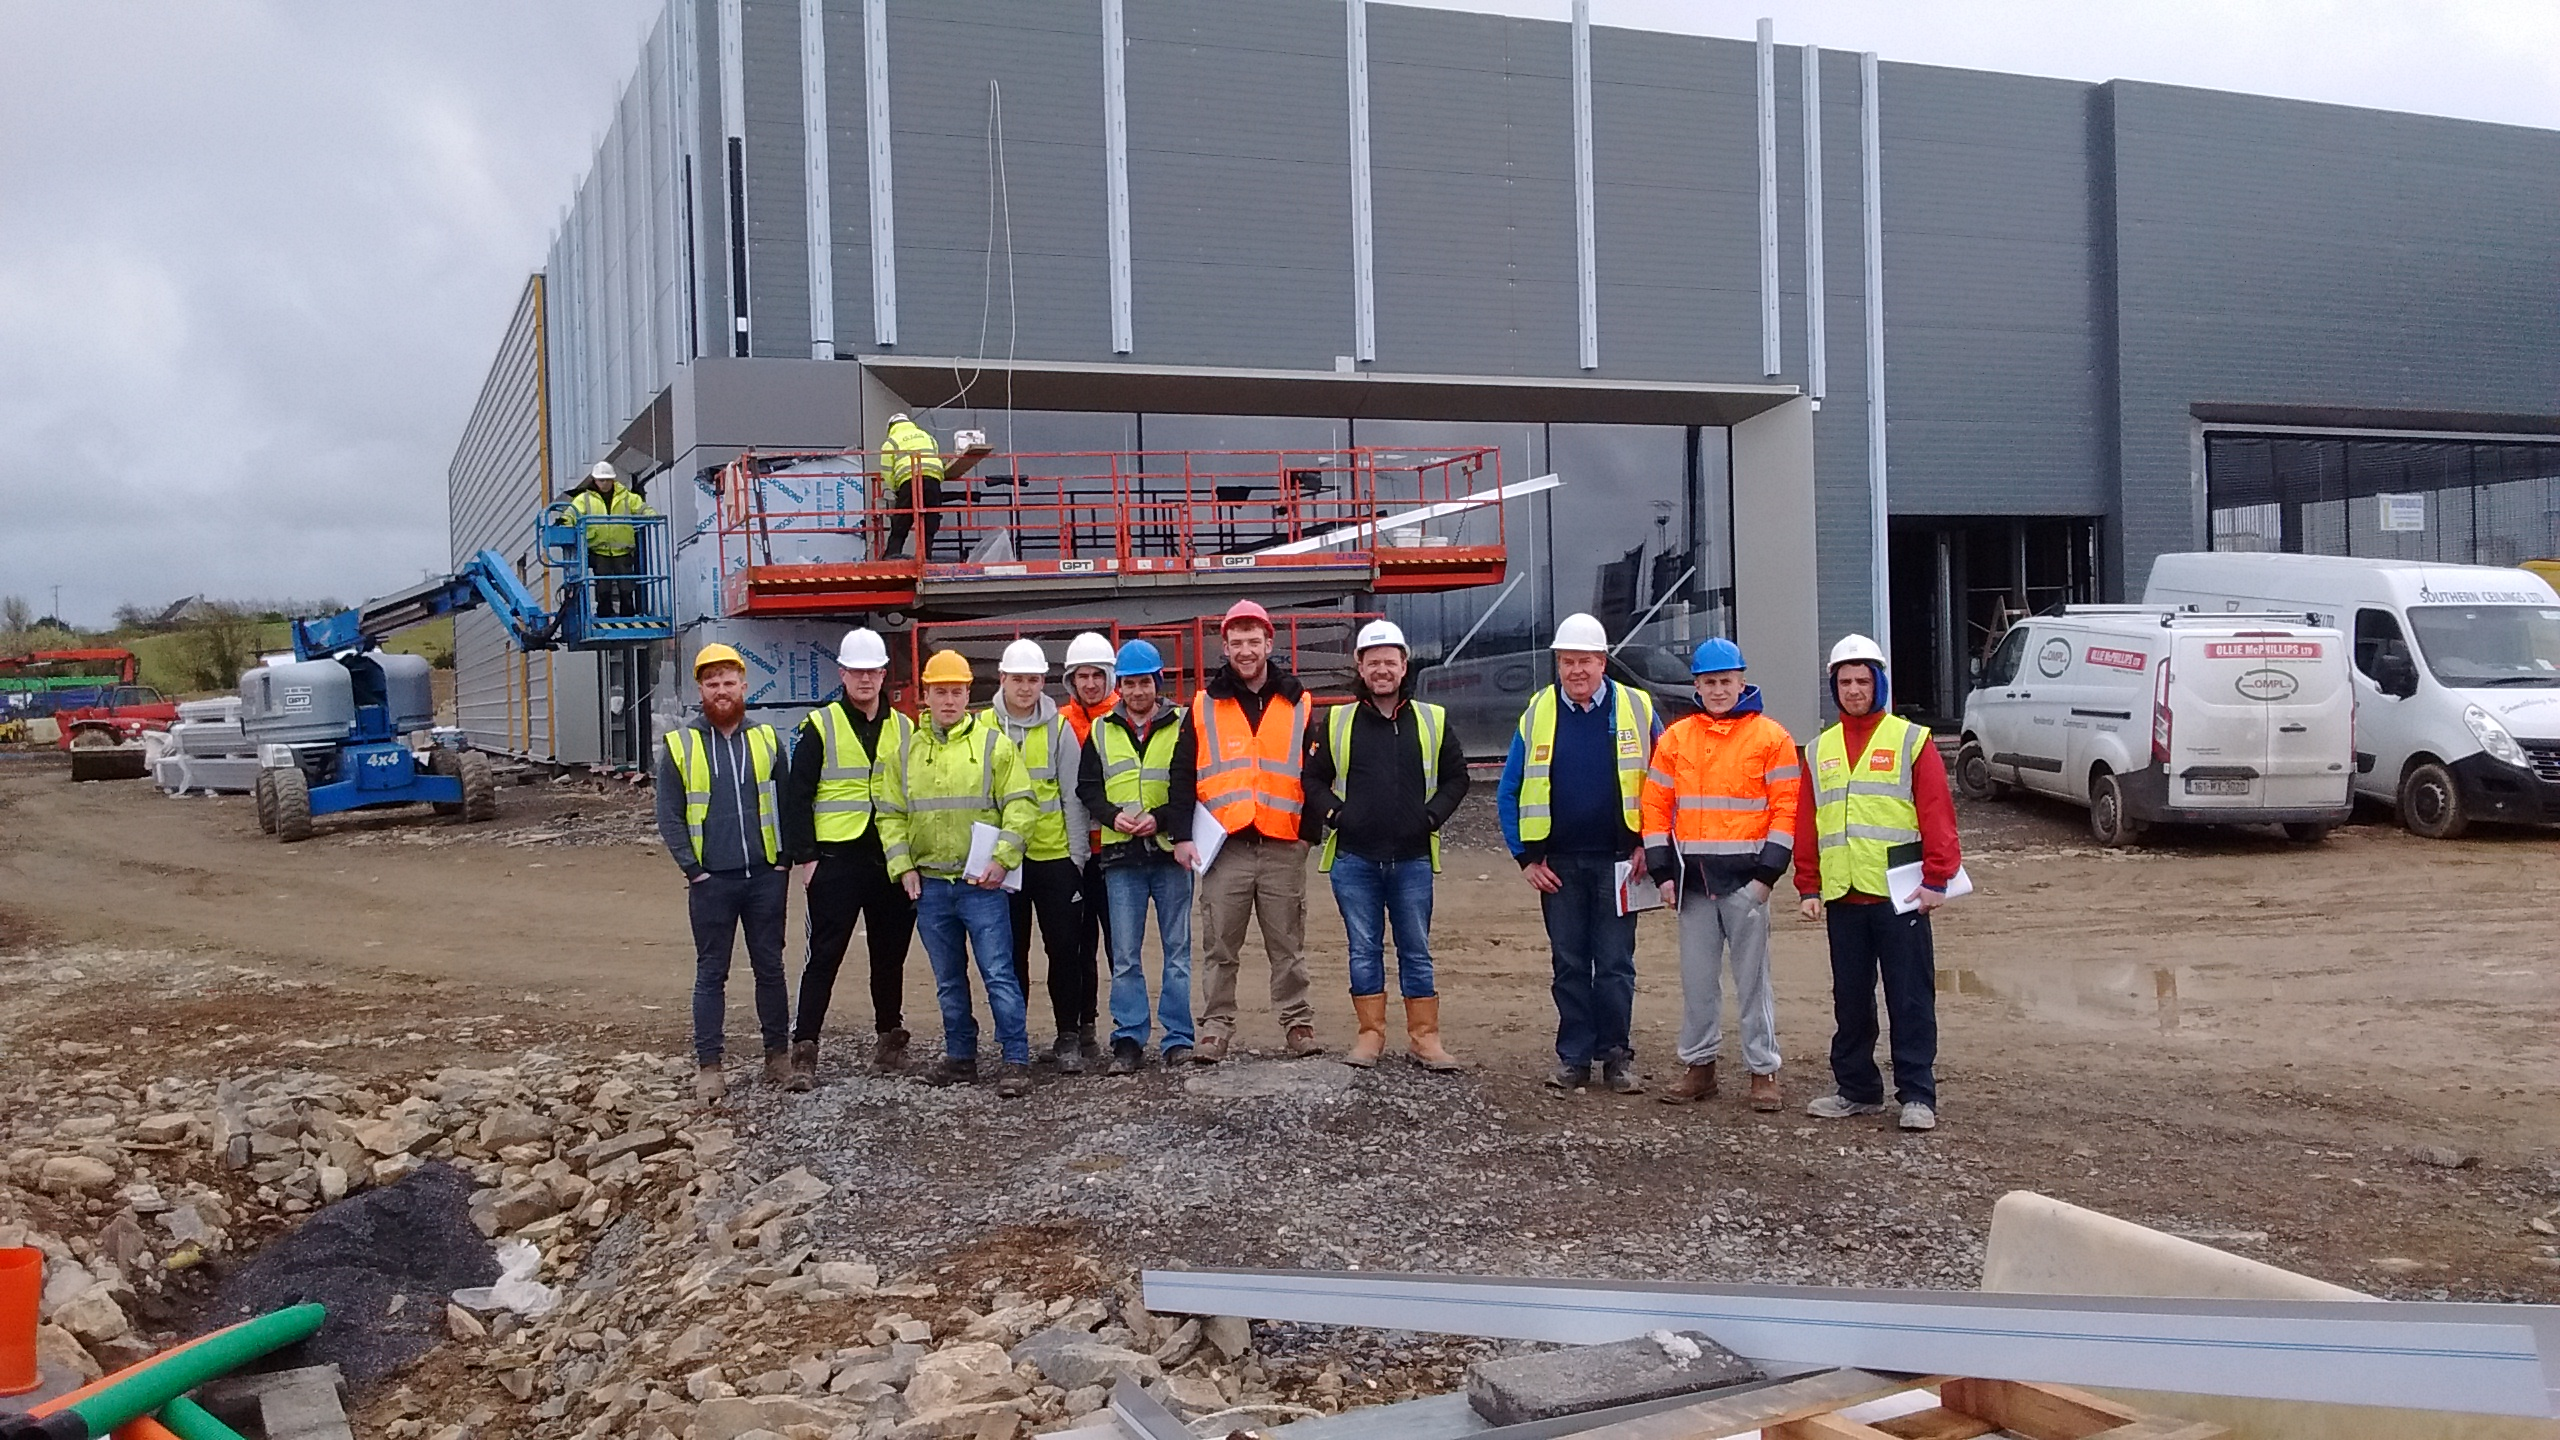 BSc (hons) in Quantity Surveying Staff & Students at the Jaguar Land Rover Site Visit